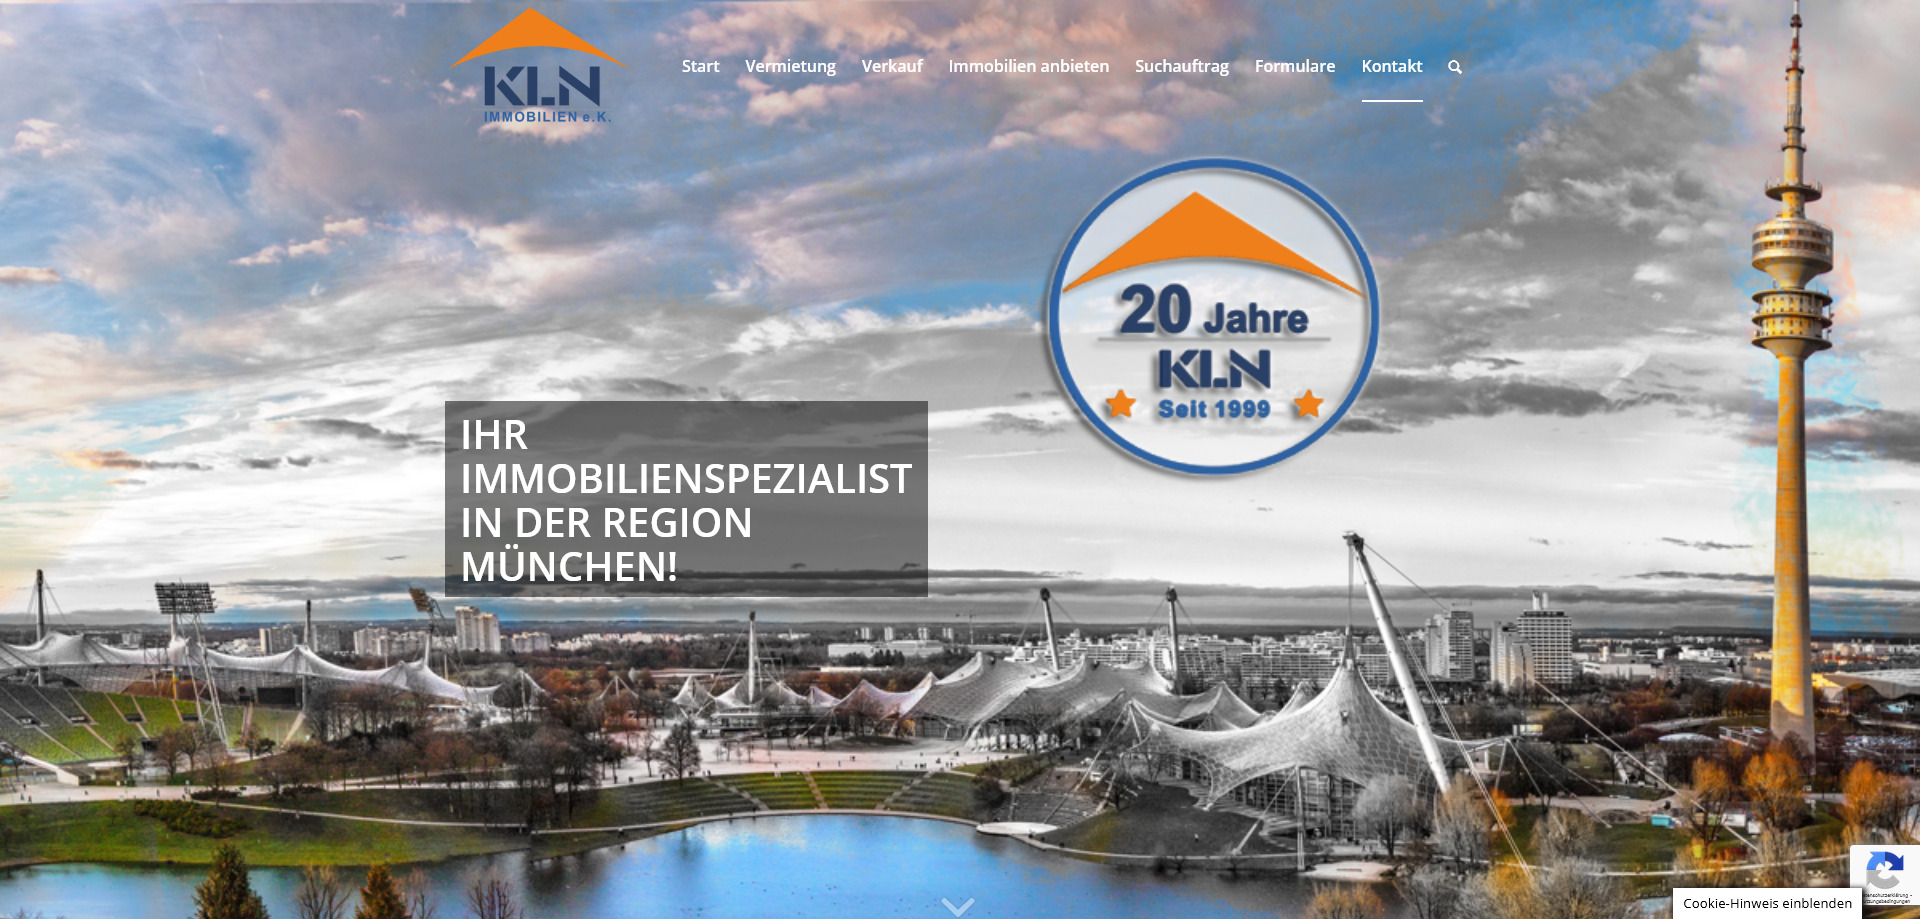 KLN Immobilien München made by kindshuber